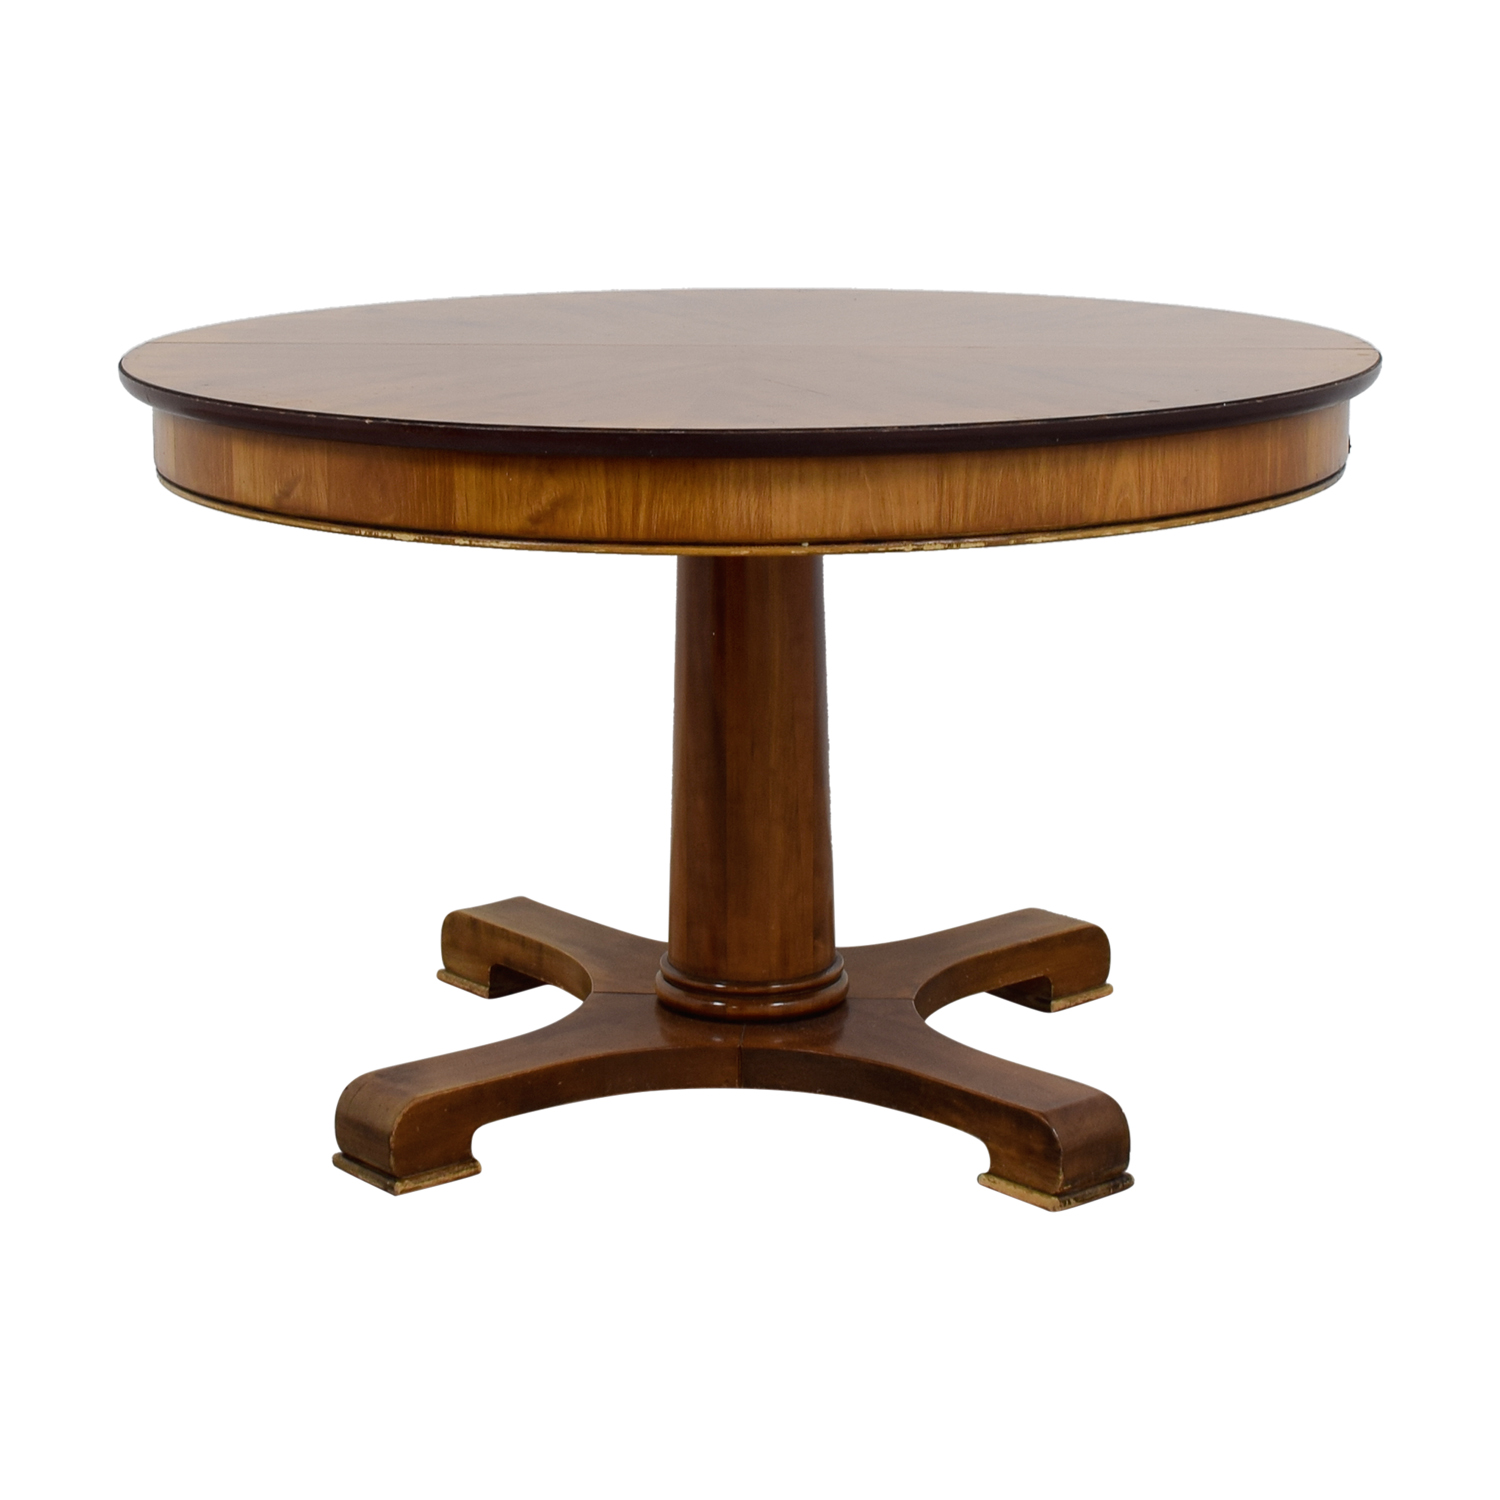 89% OFF - Grange Grange Expandable Wood Dining Table with Protective Cover  / Tables